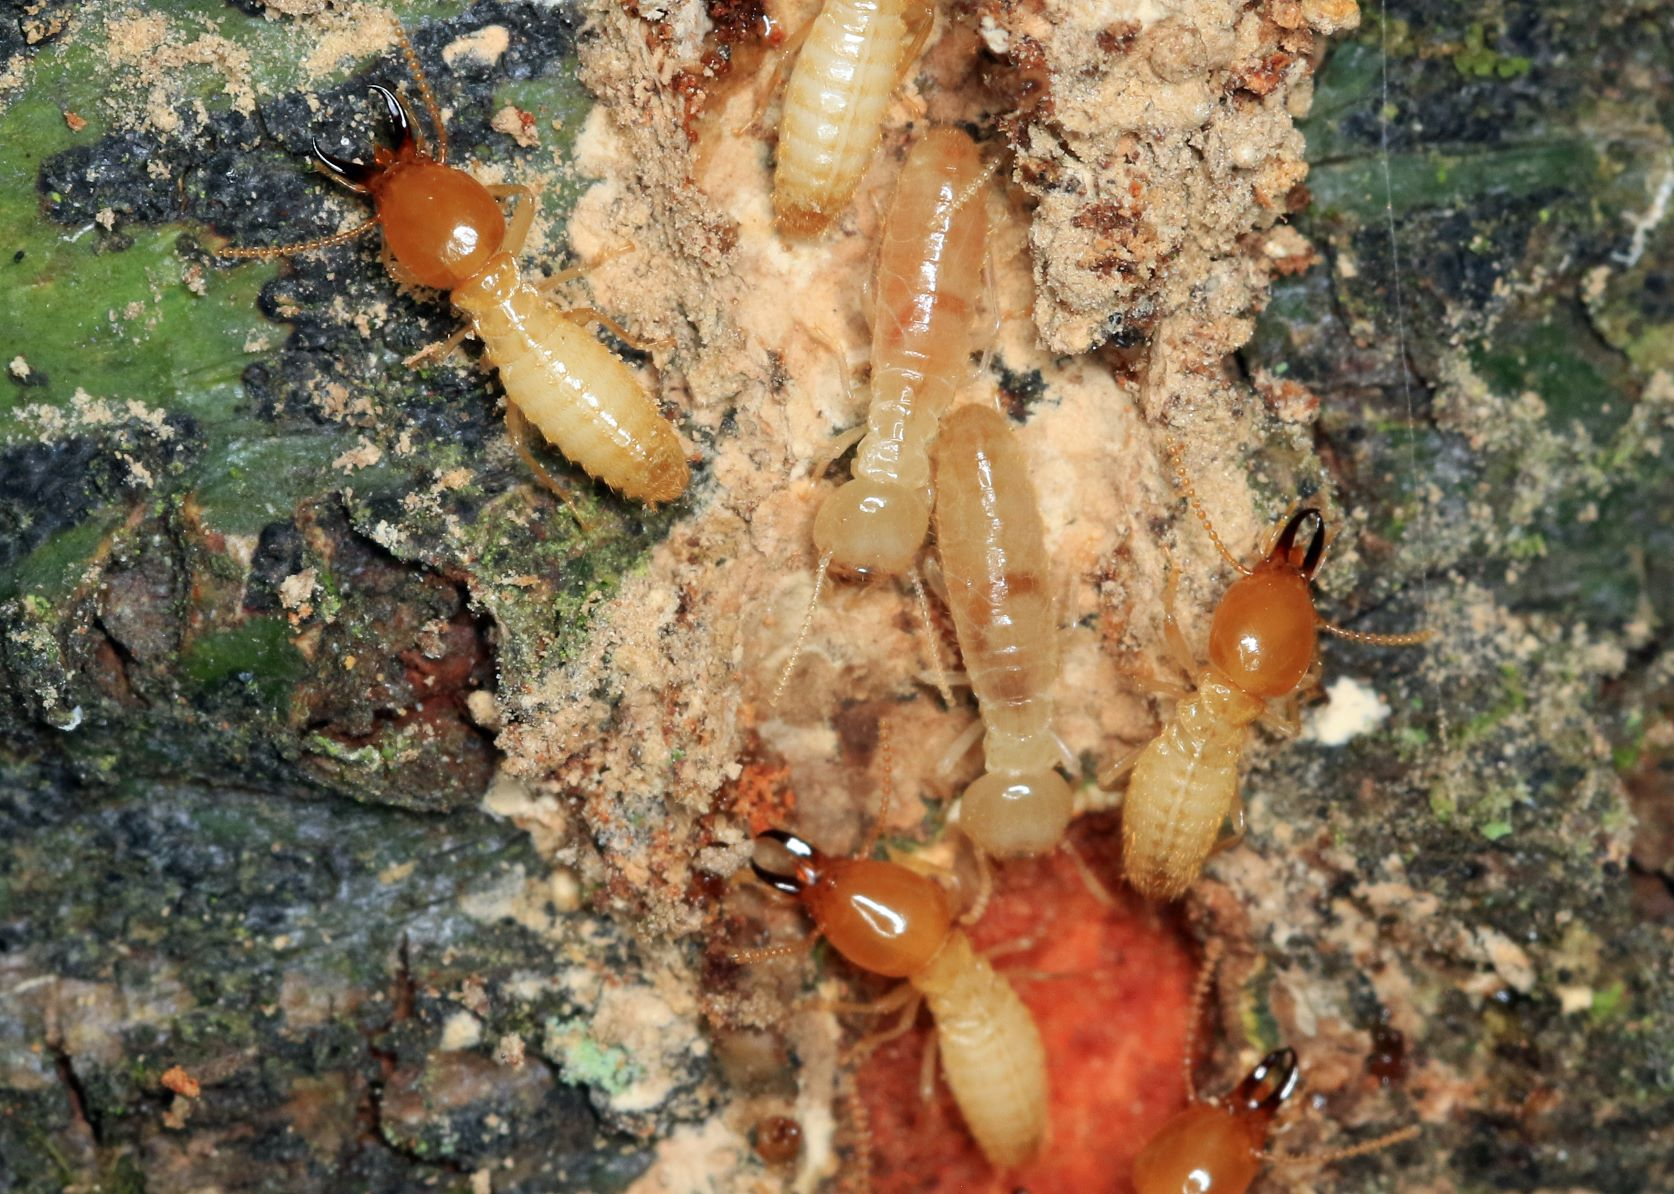 Formosan subterranean termite workers and soldierspng